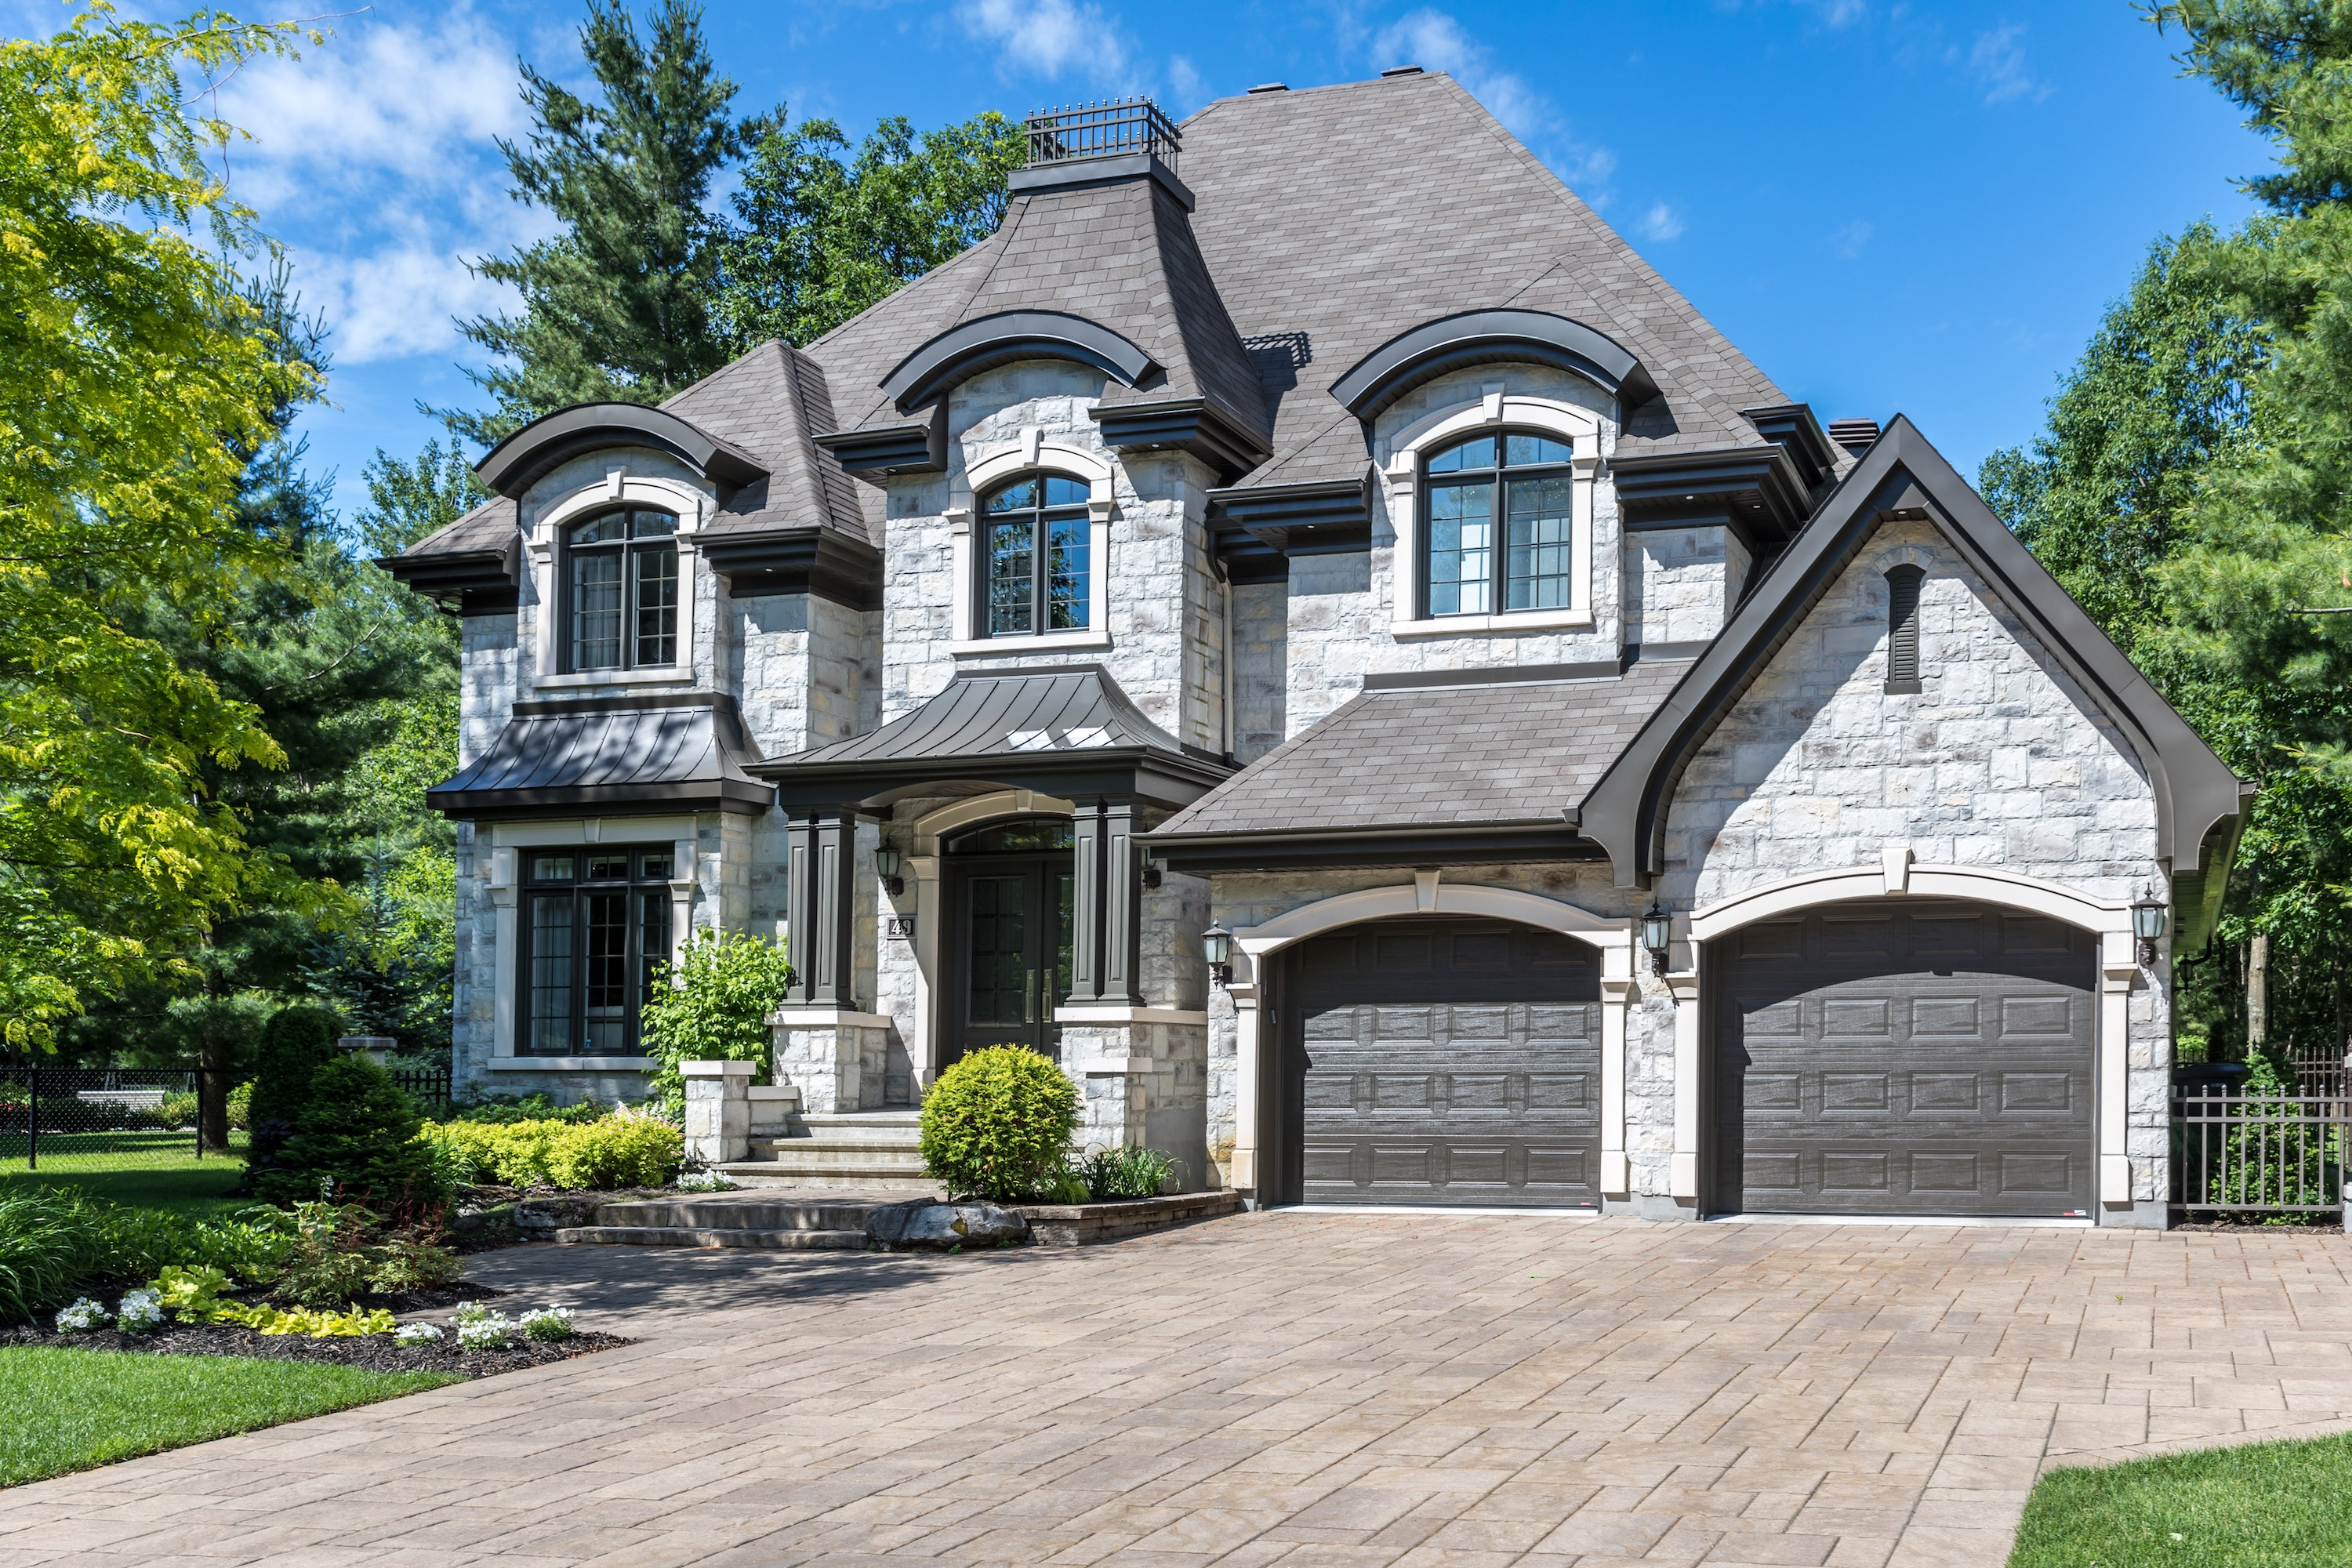 luxury stone house with paver driveway and two car garage